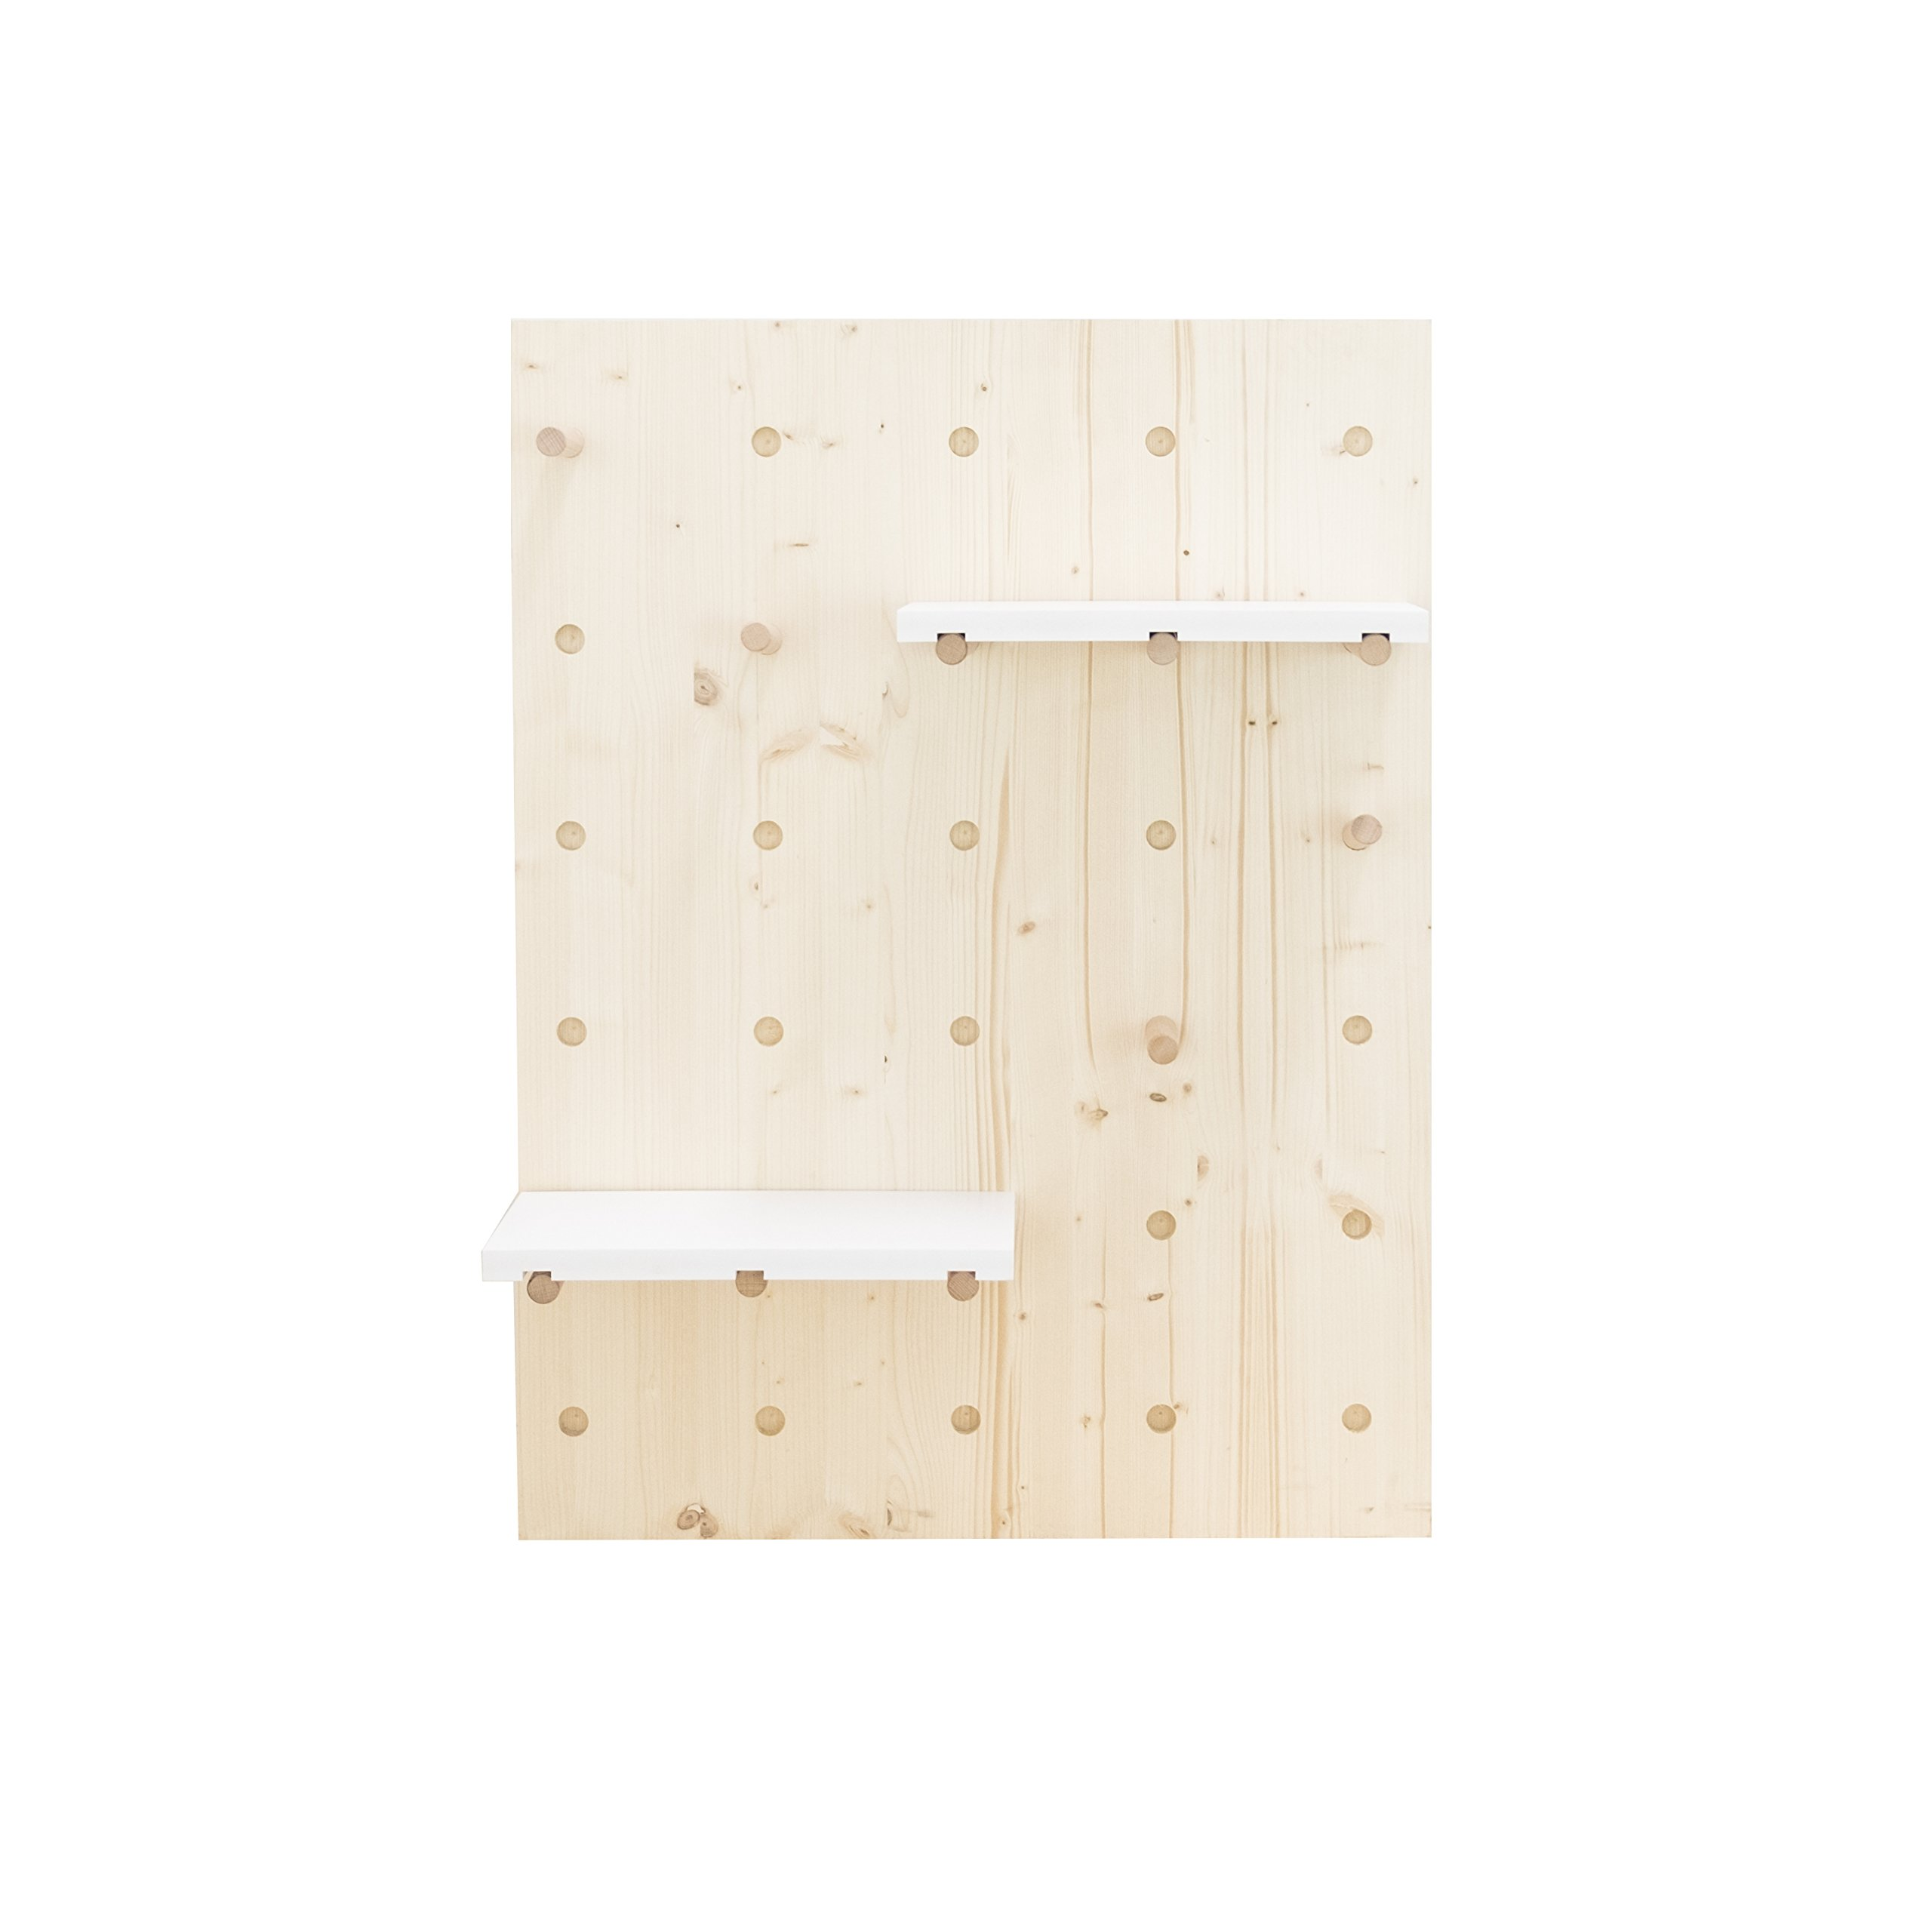 Decowood Panel of Accessories, Wood, Beige, 120x 40x 2cm by Decowood (Image #1)